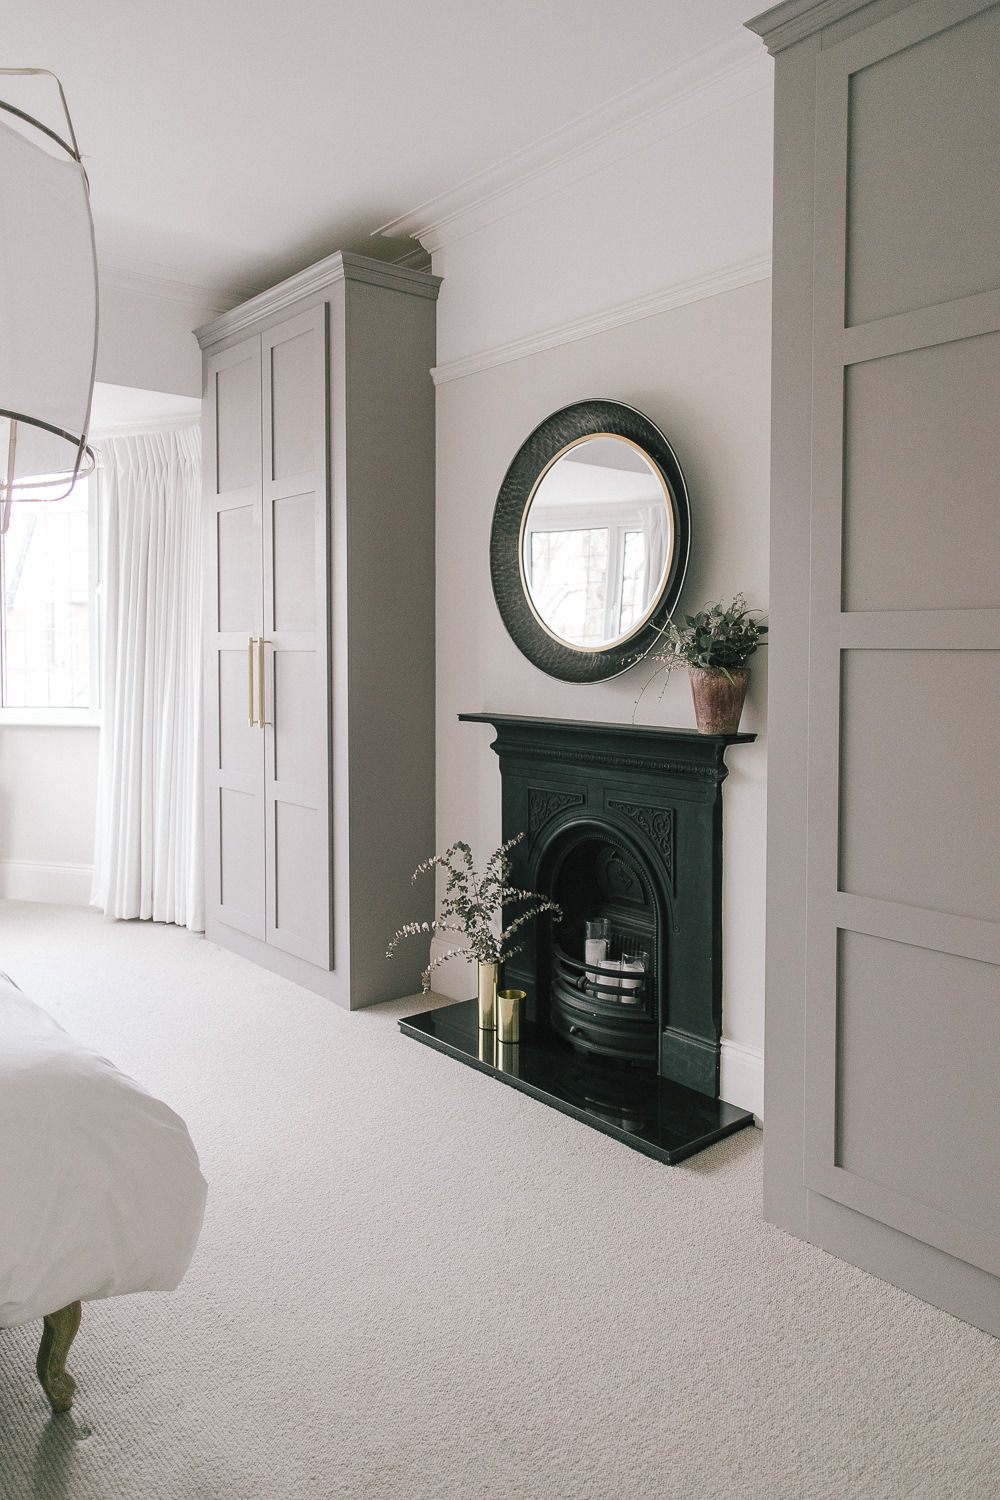 Home Tour of a Characterful Edwardian Semi in Moseley, Birmingham